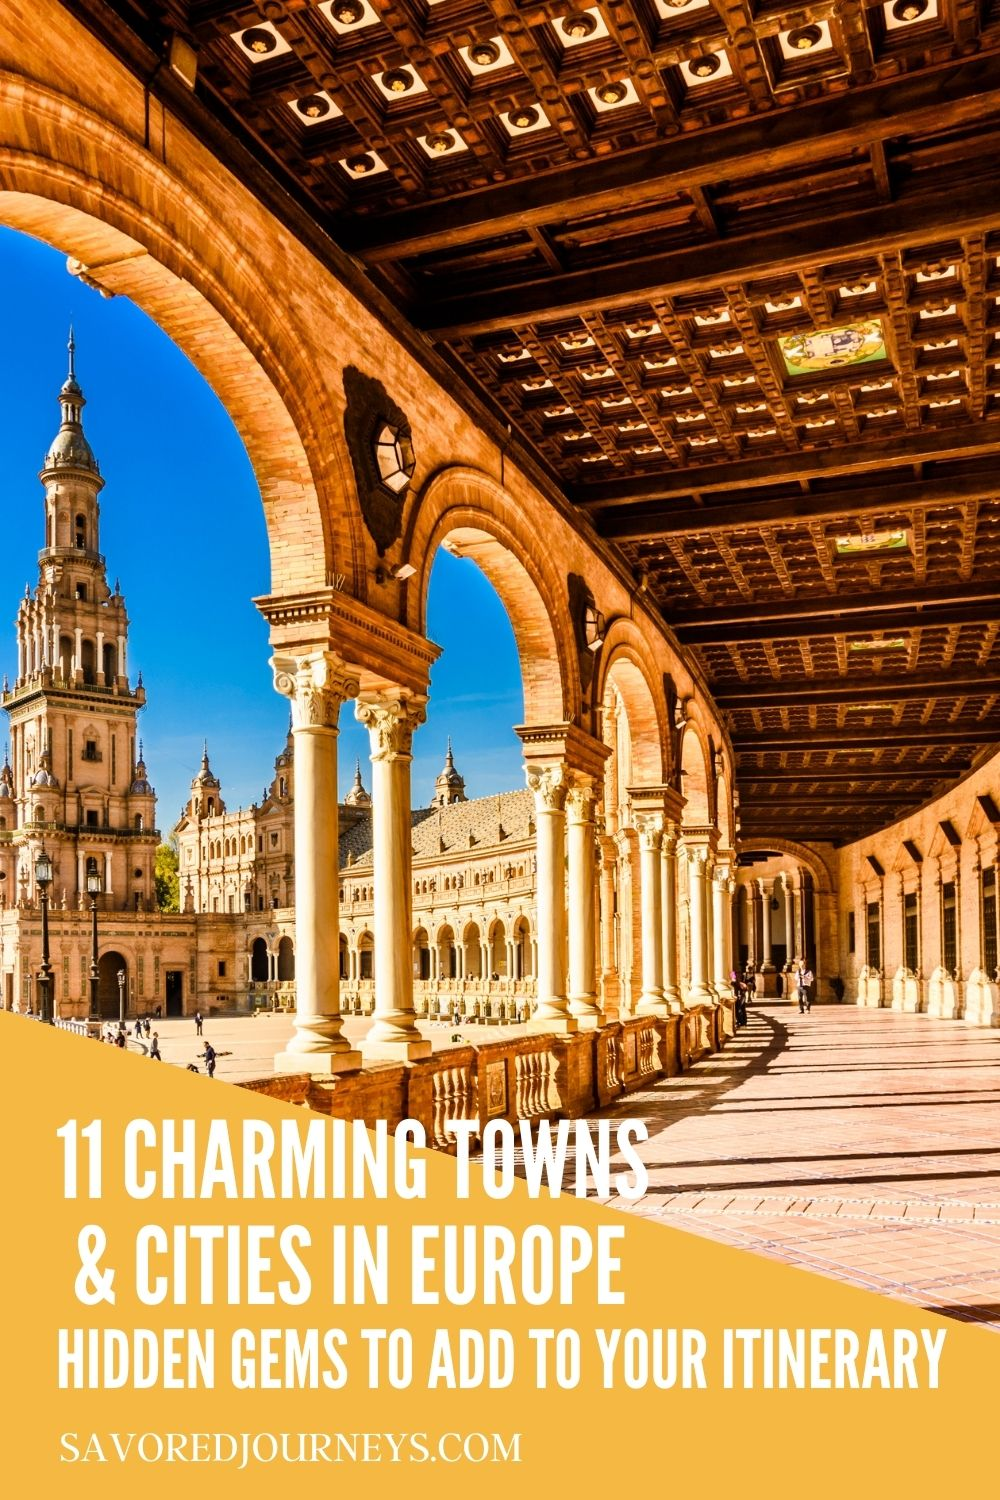 11 Charming Towns & Cities in Europe